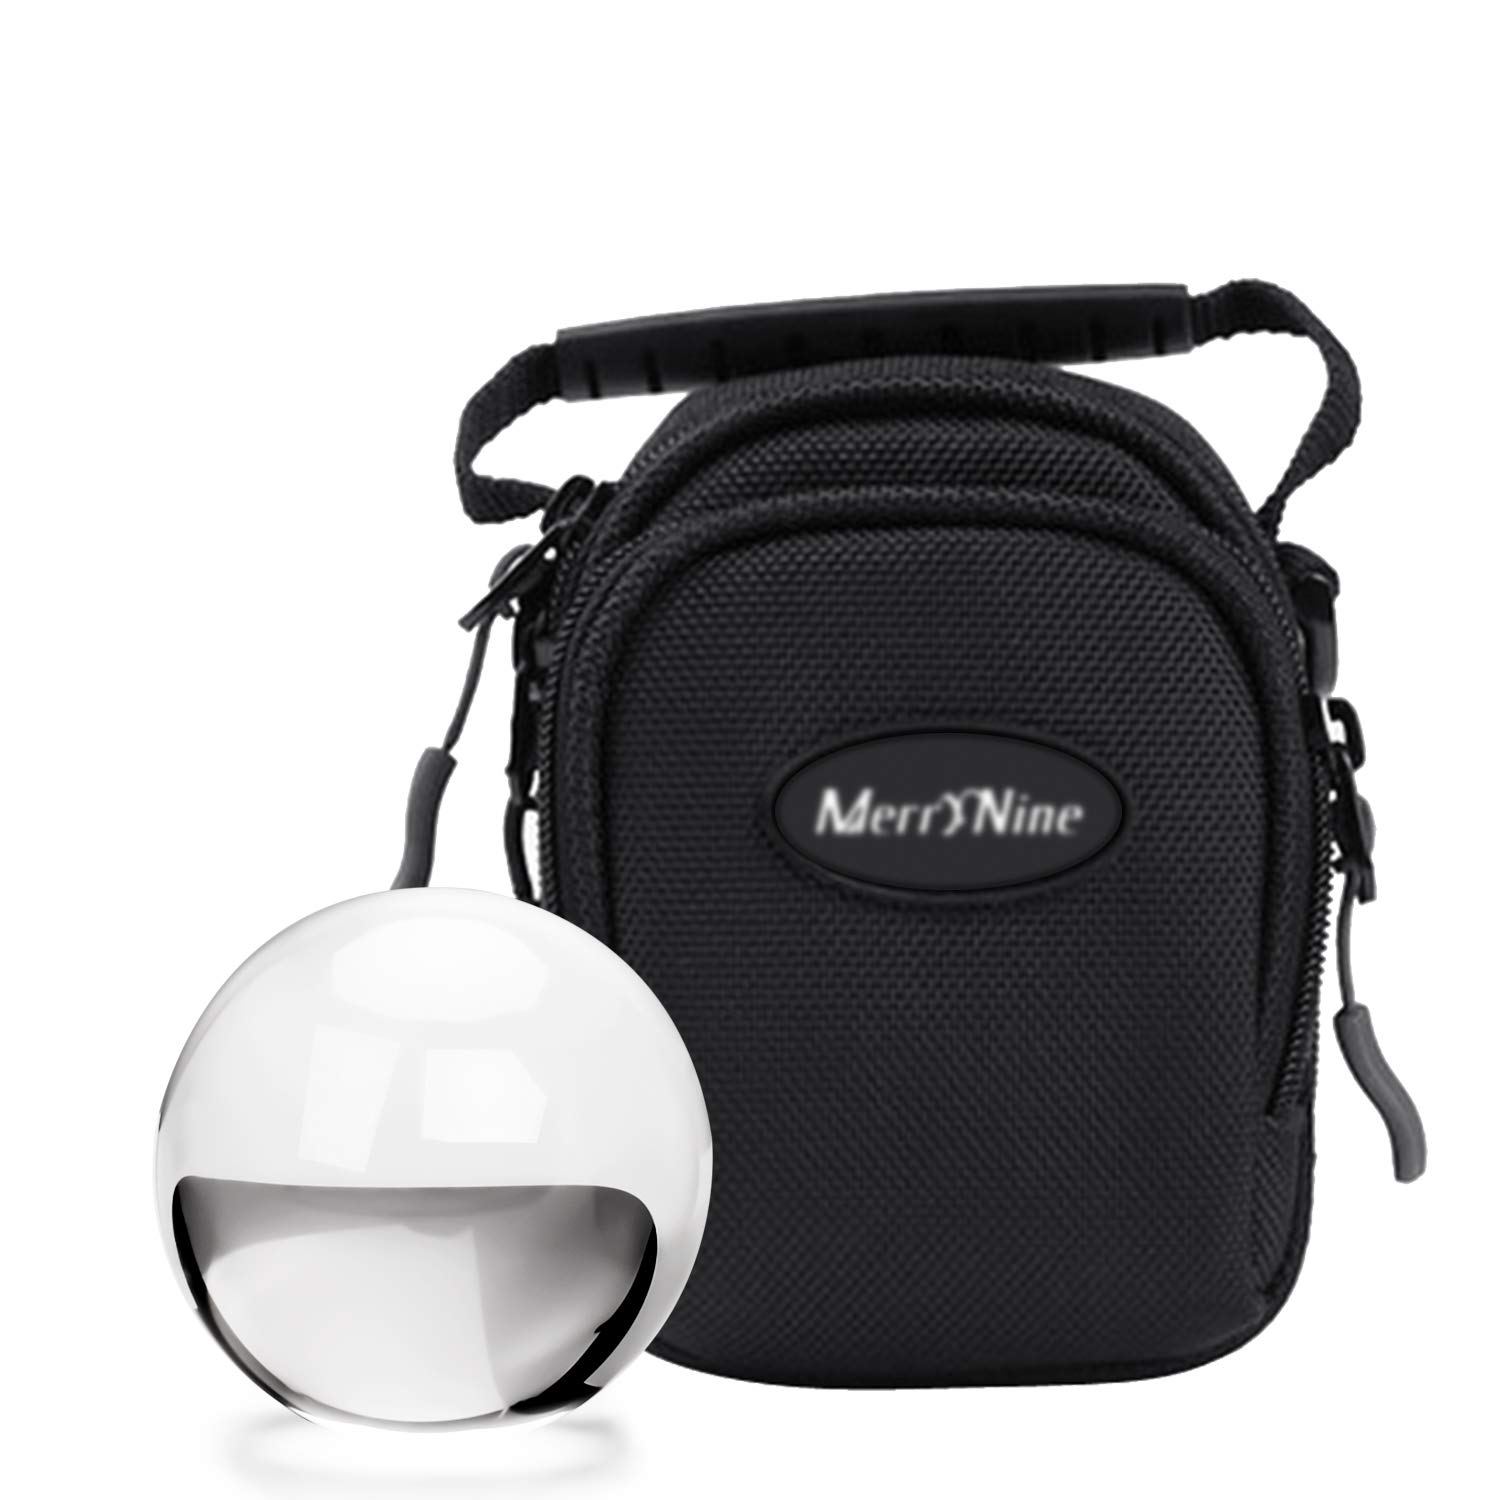 MerryNine Crystal Ball with Ball Case Bag Set, K9 Crystal Photography Ball, Including Microfiber Pouch and Crystal Ball Manual, Perfect Photography Accessories (60mm/2.36'')